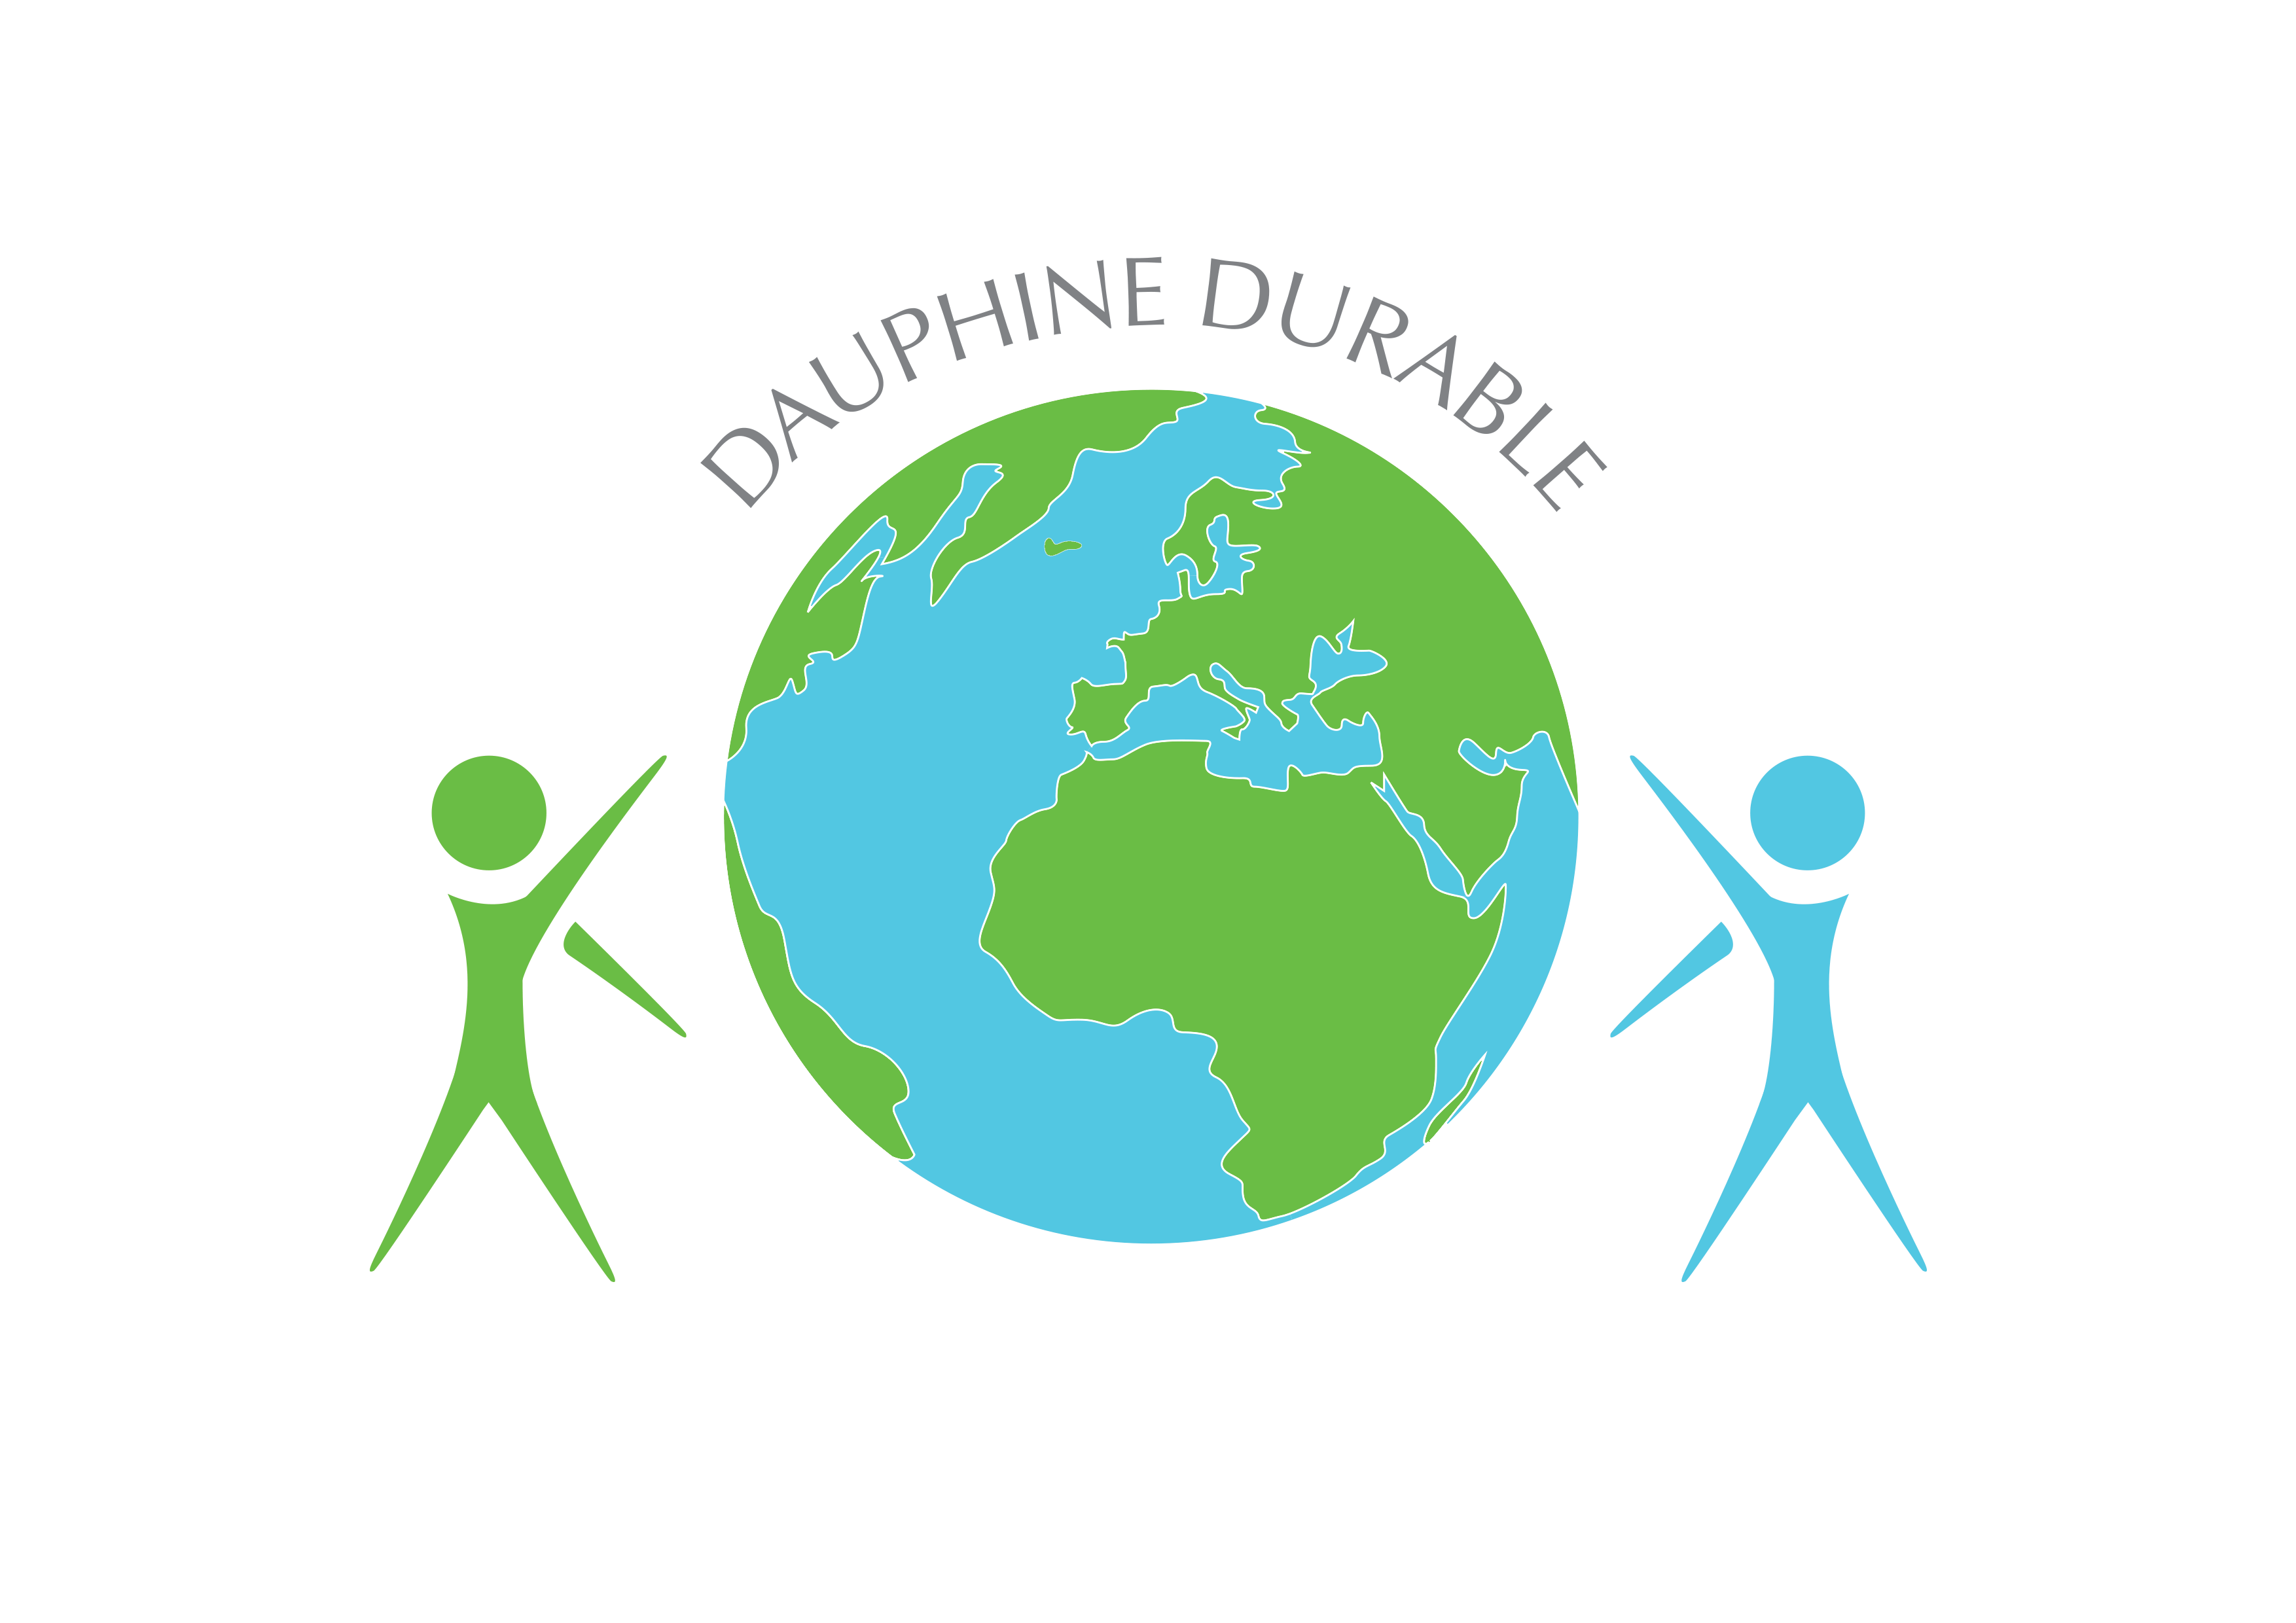 LOGO DAUPHINE DURABLE PNG